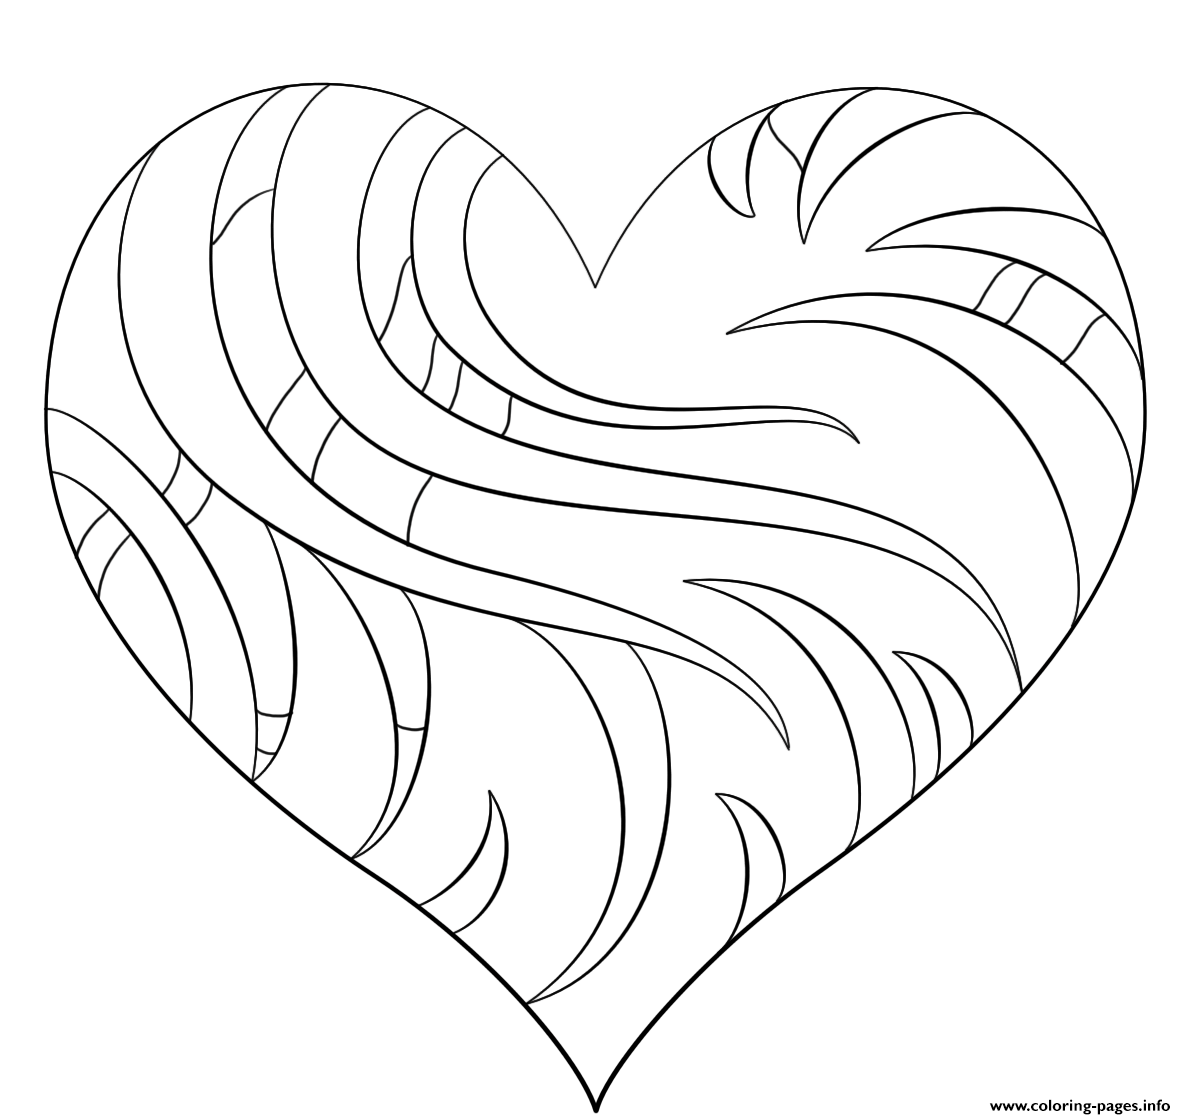 Intricate Heart coloring pages